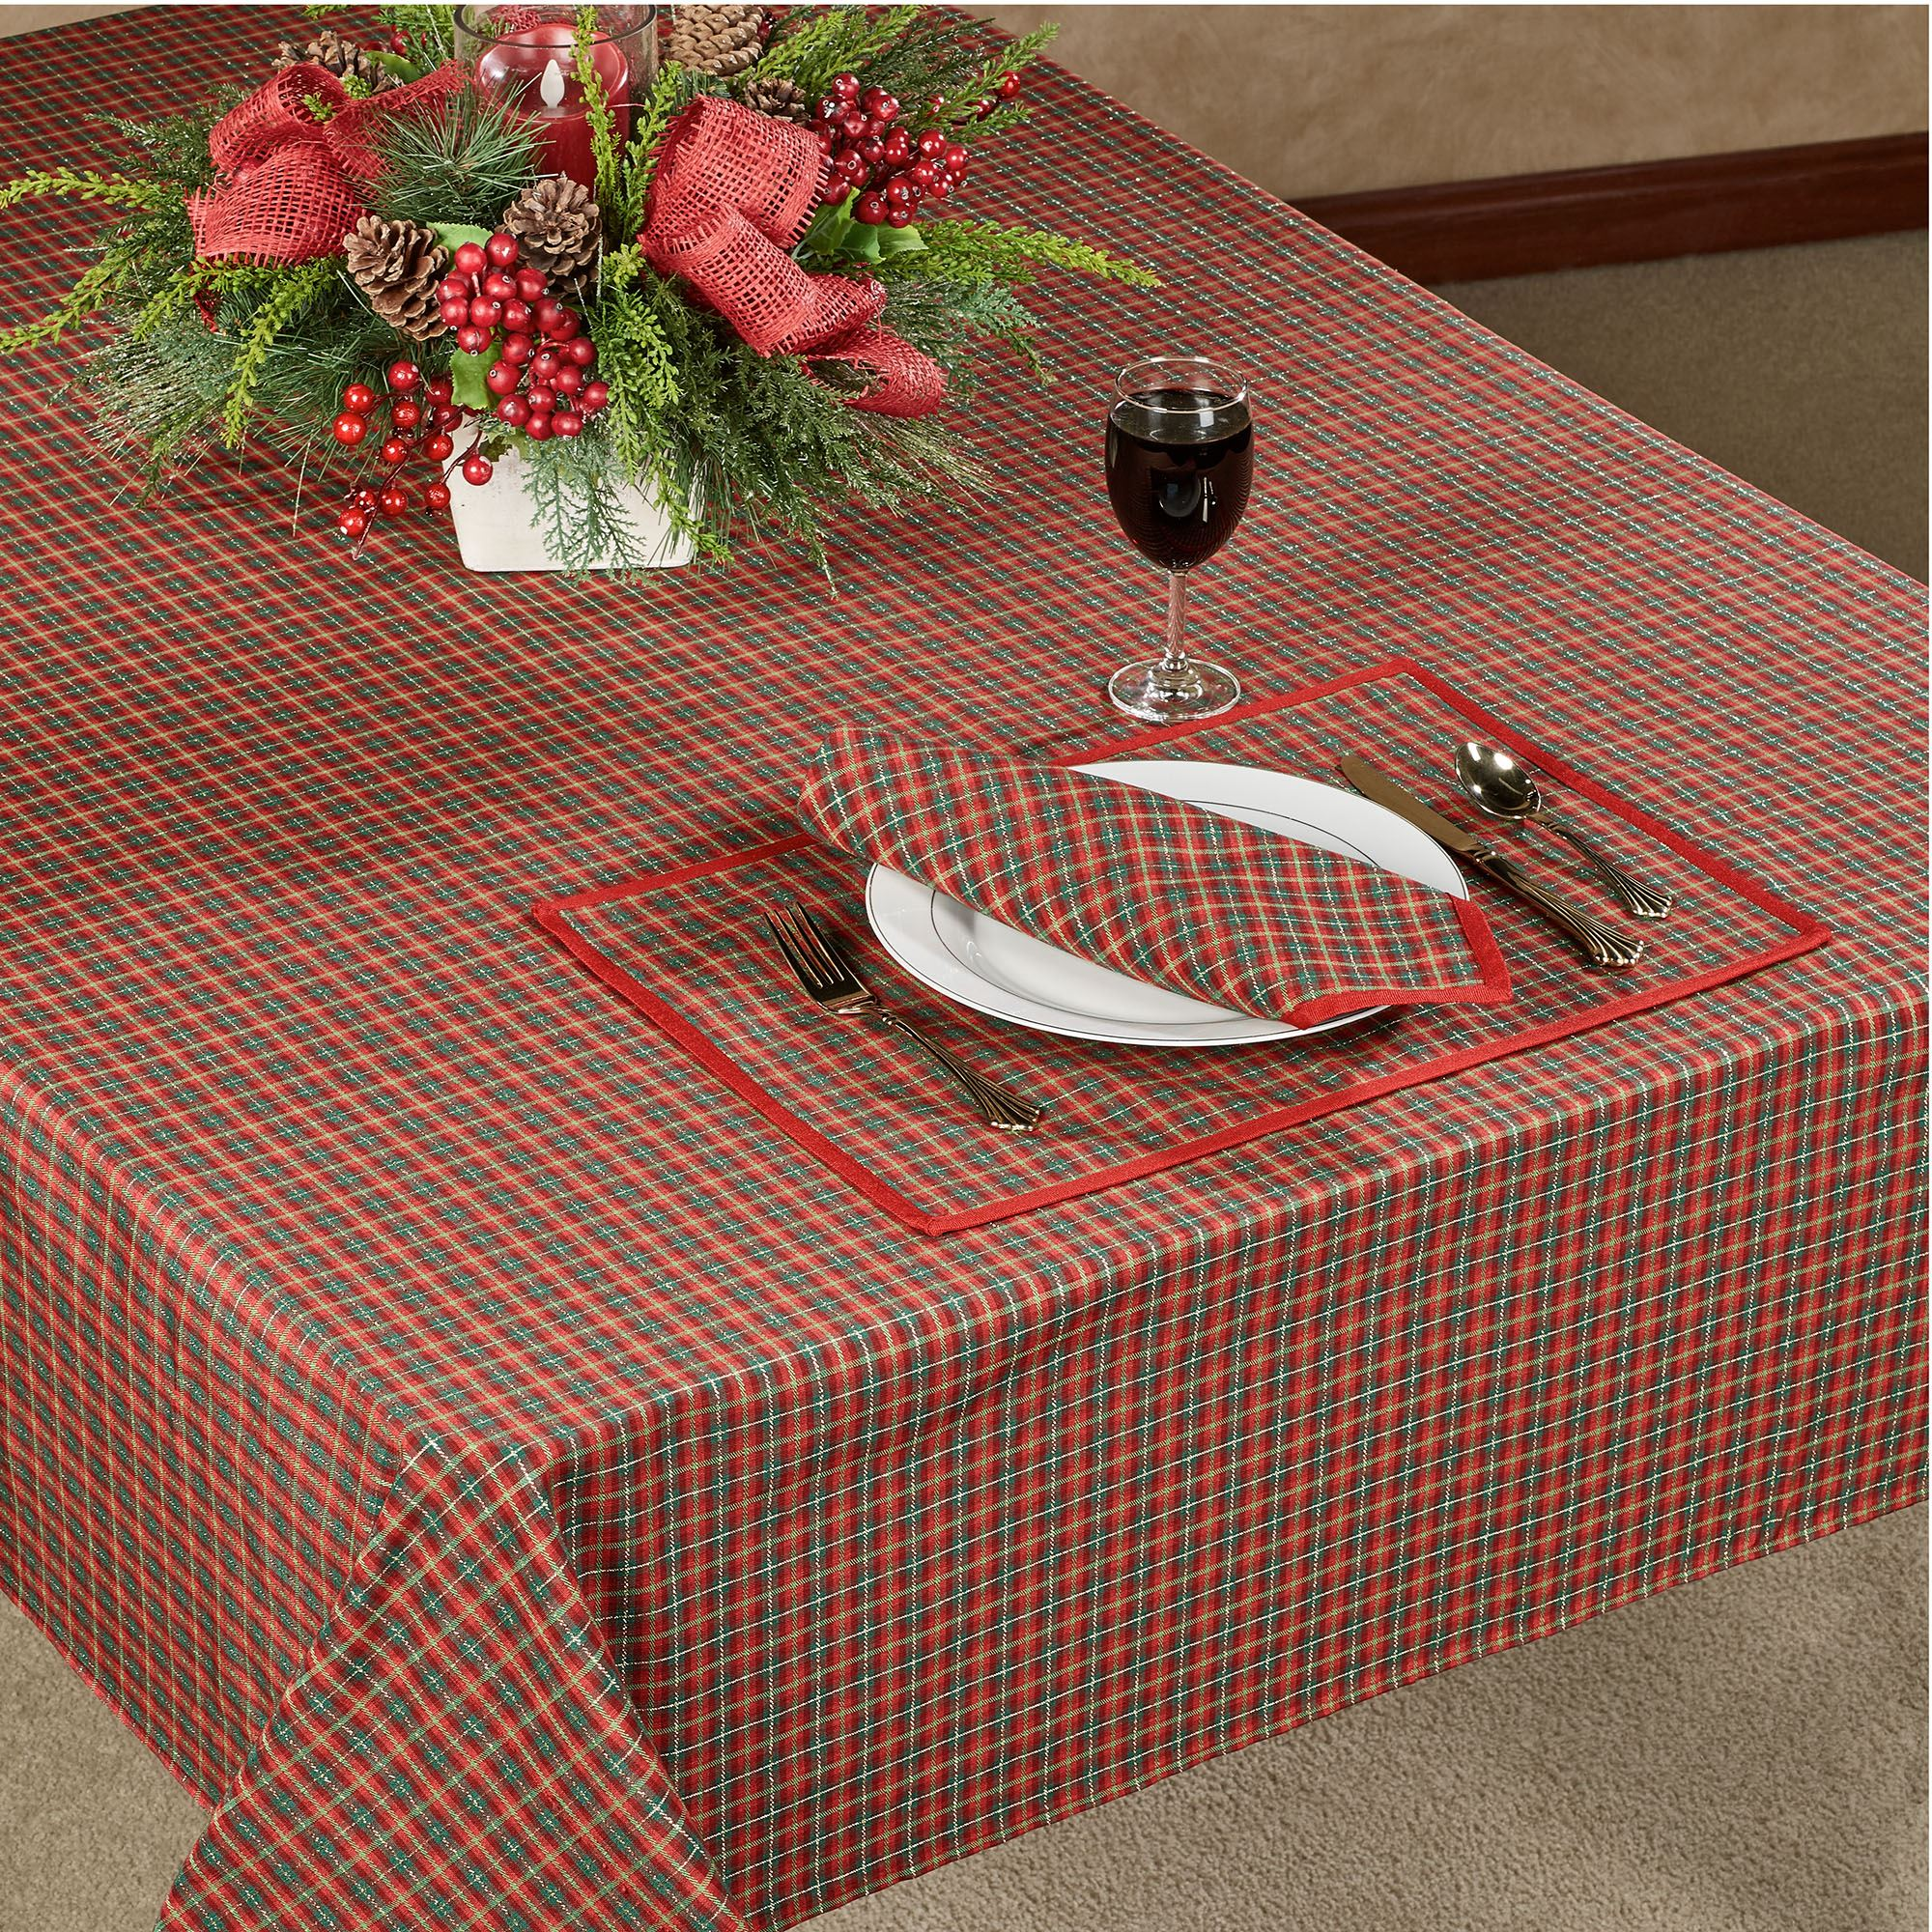 Holiday Nouveau Joyful Oblong Tablecloth Red